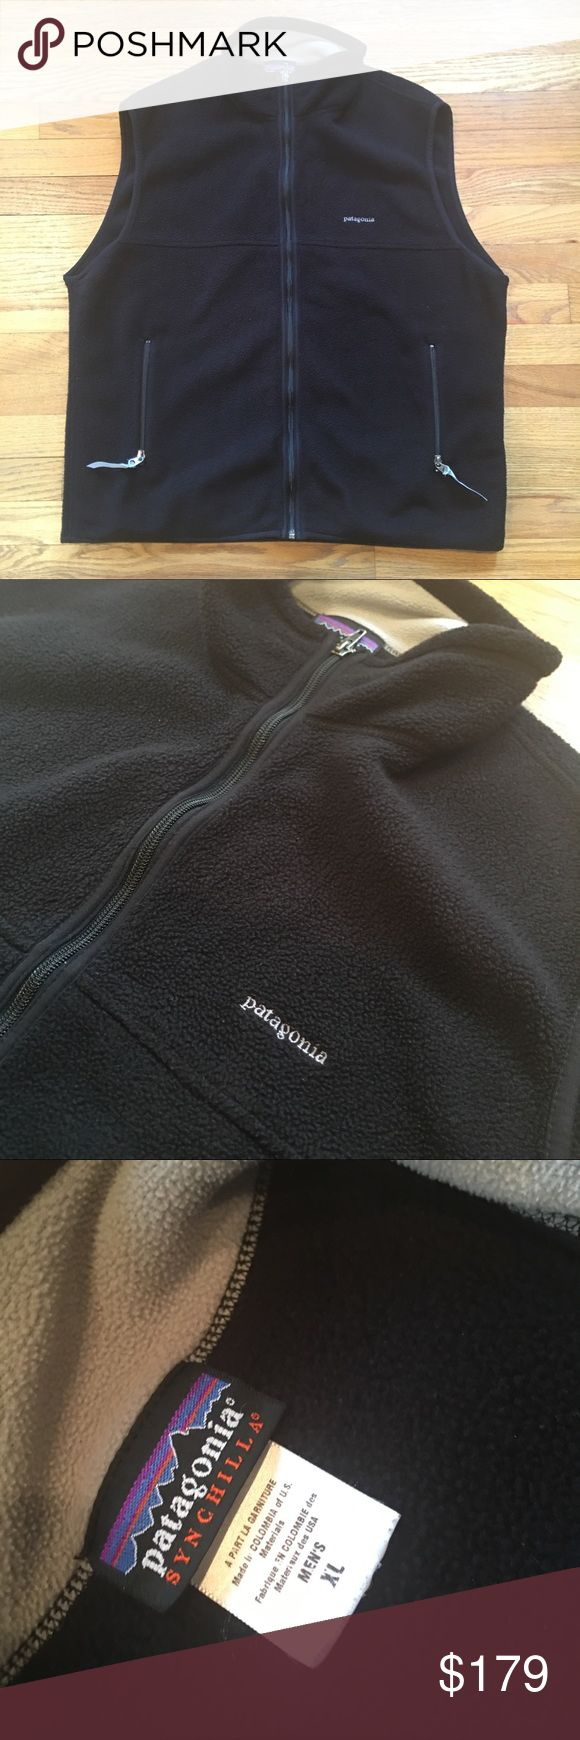 Mens Patagonia Synchilla Black Fleece Vest - XL Mens Patagonia Synchilla Black Fleece Vest - XL - Pre-owned In Excellent/Mint Condition.  May be new without tags. Patagonia Jackets & Coats Vests